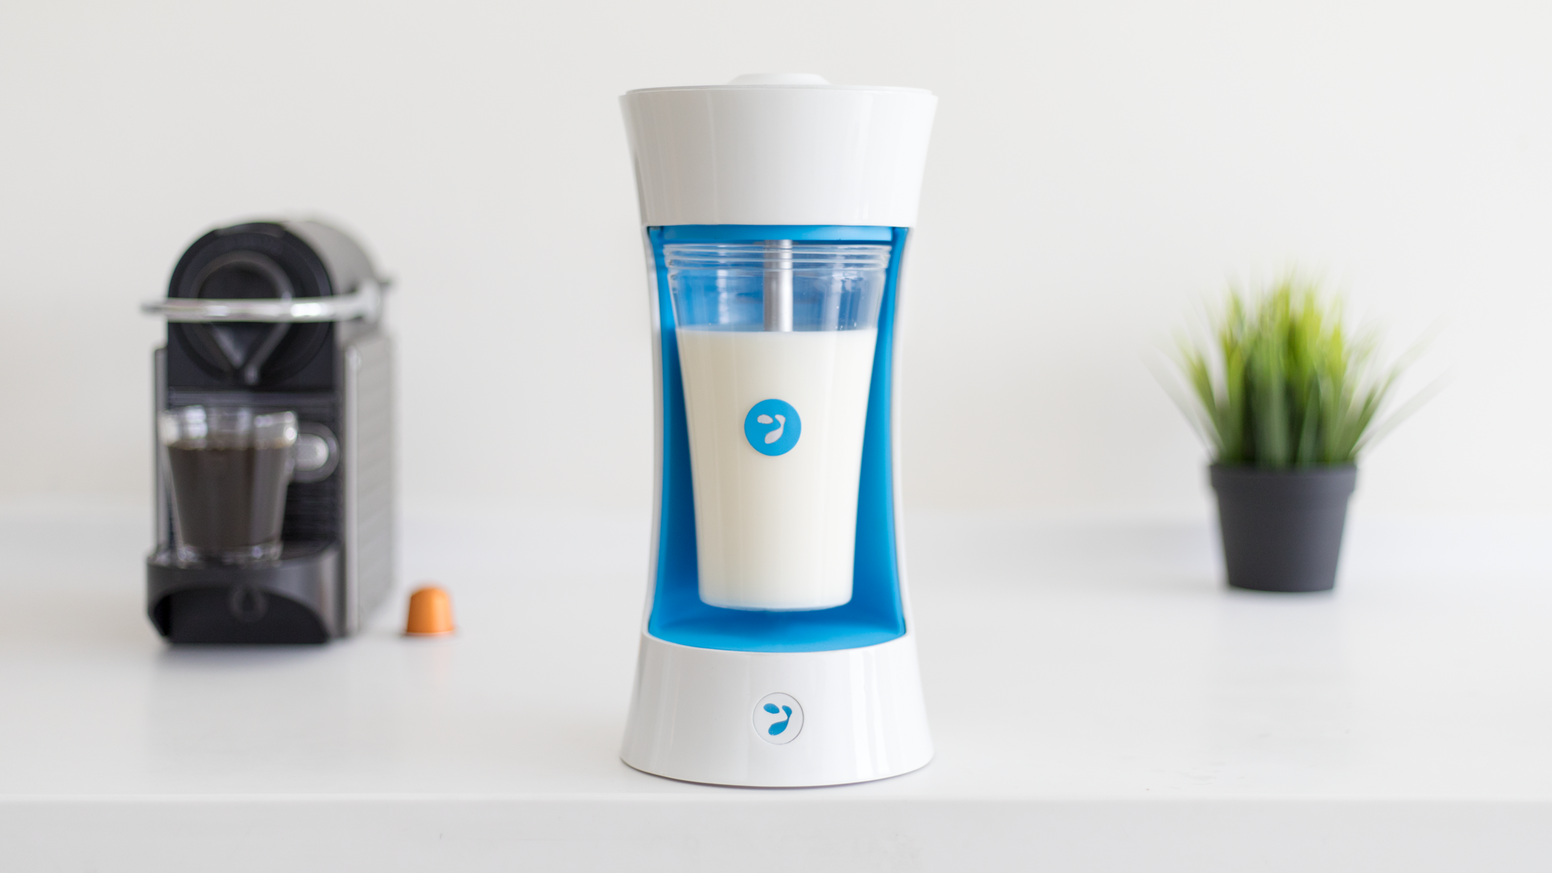 Yomee is revolutionizing homemade yogurt: With its Keurig-like design, just add milk and a Yomee pod to enjoy fresh, healthy yogurt